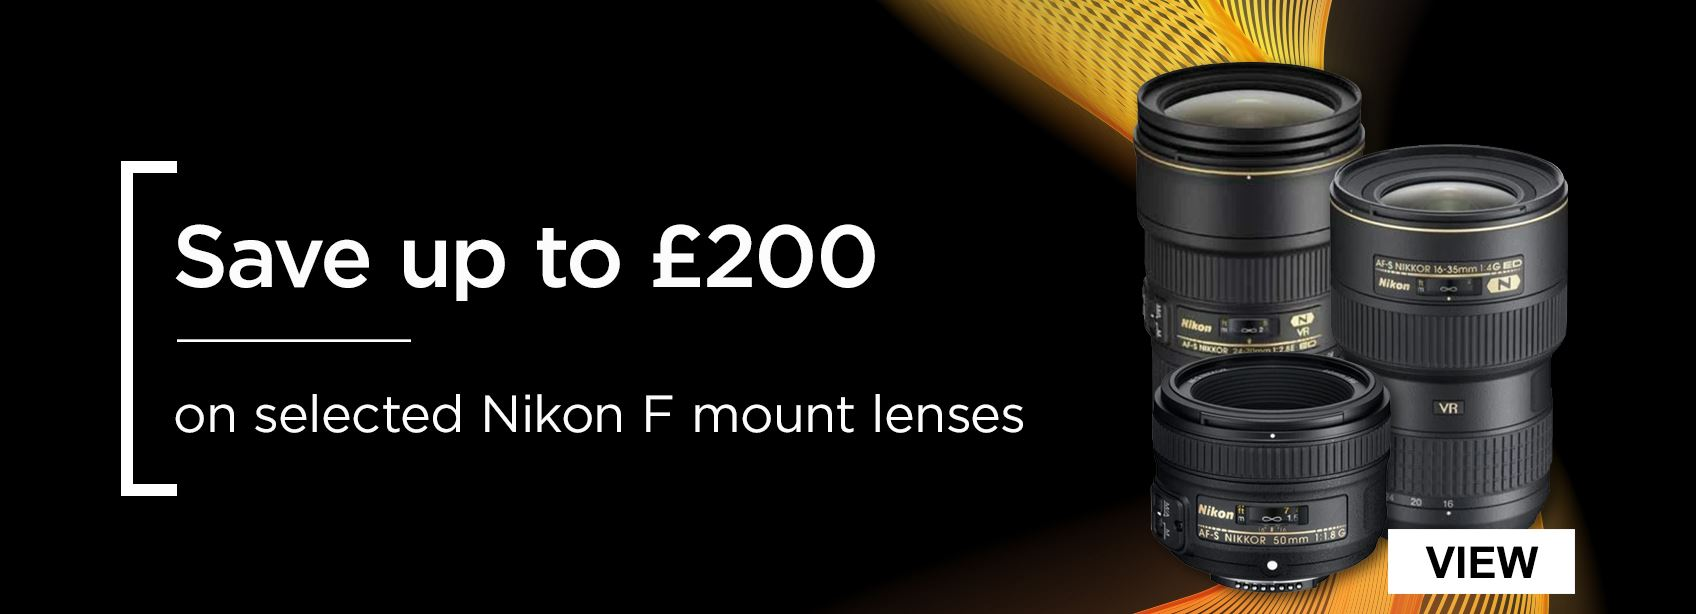 Save up to £200 on selected Nikon F Mount lenses